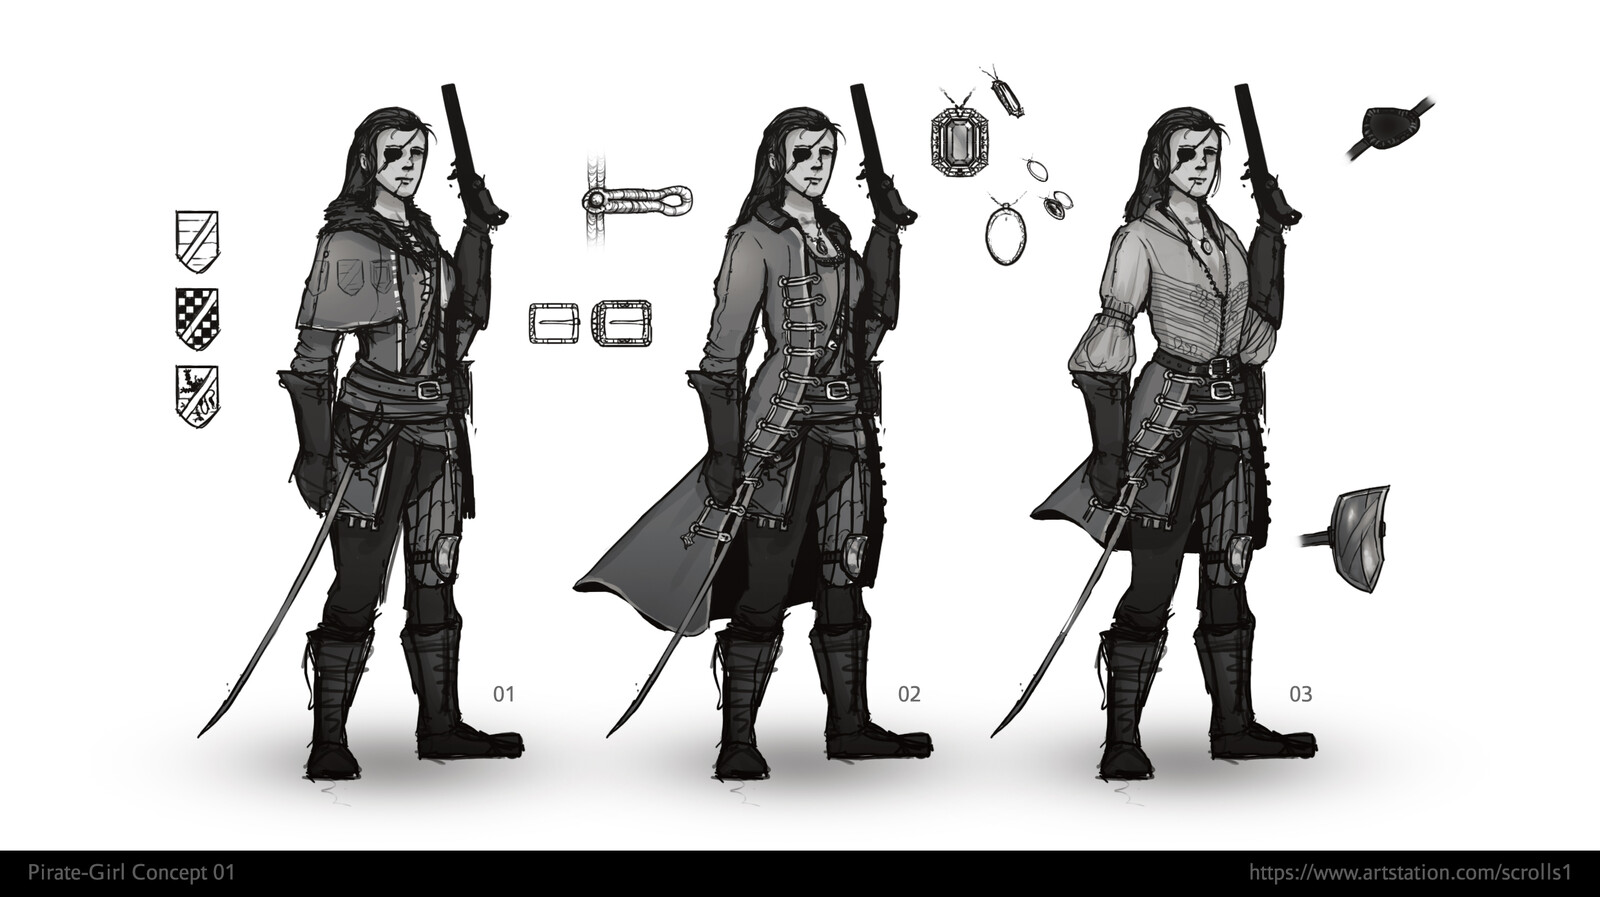 Pirate-Girl Concept 01